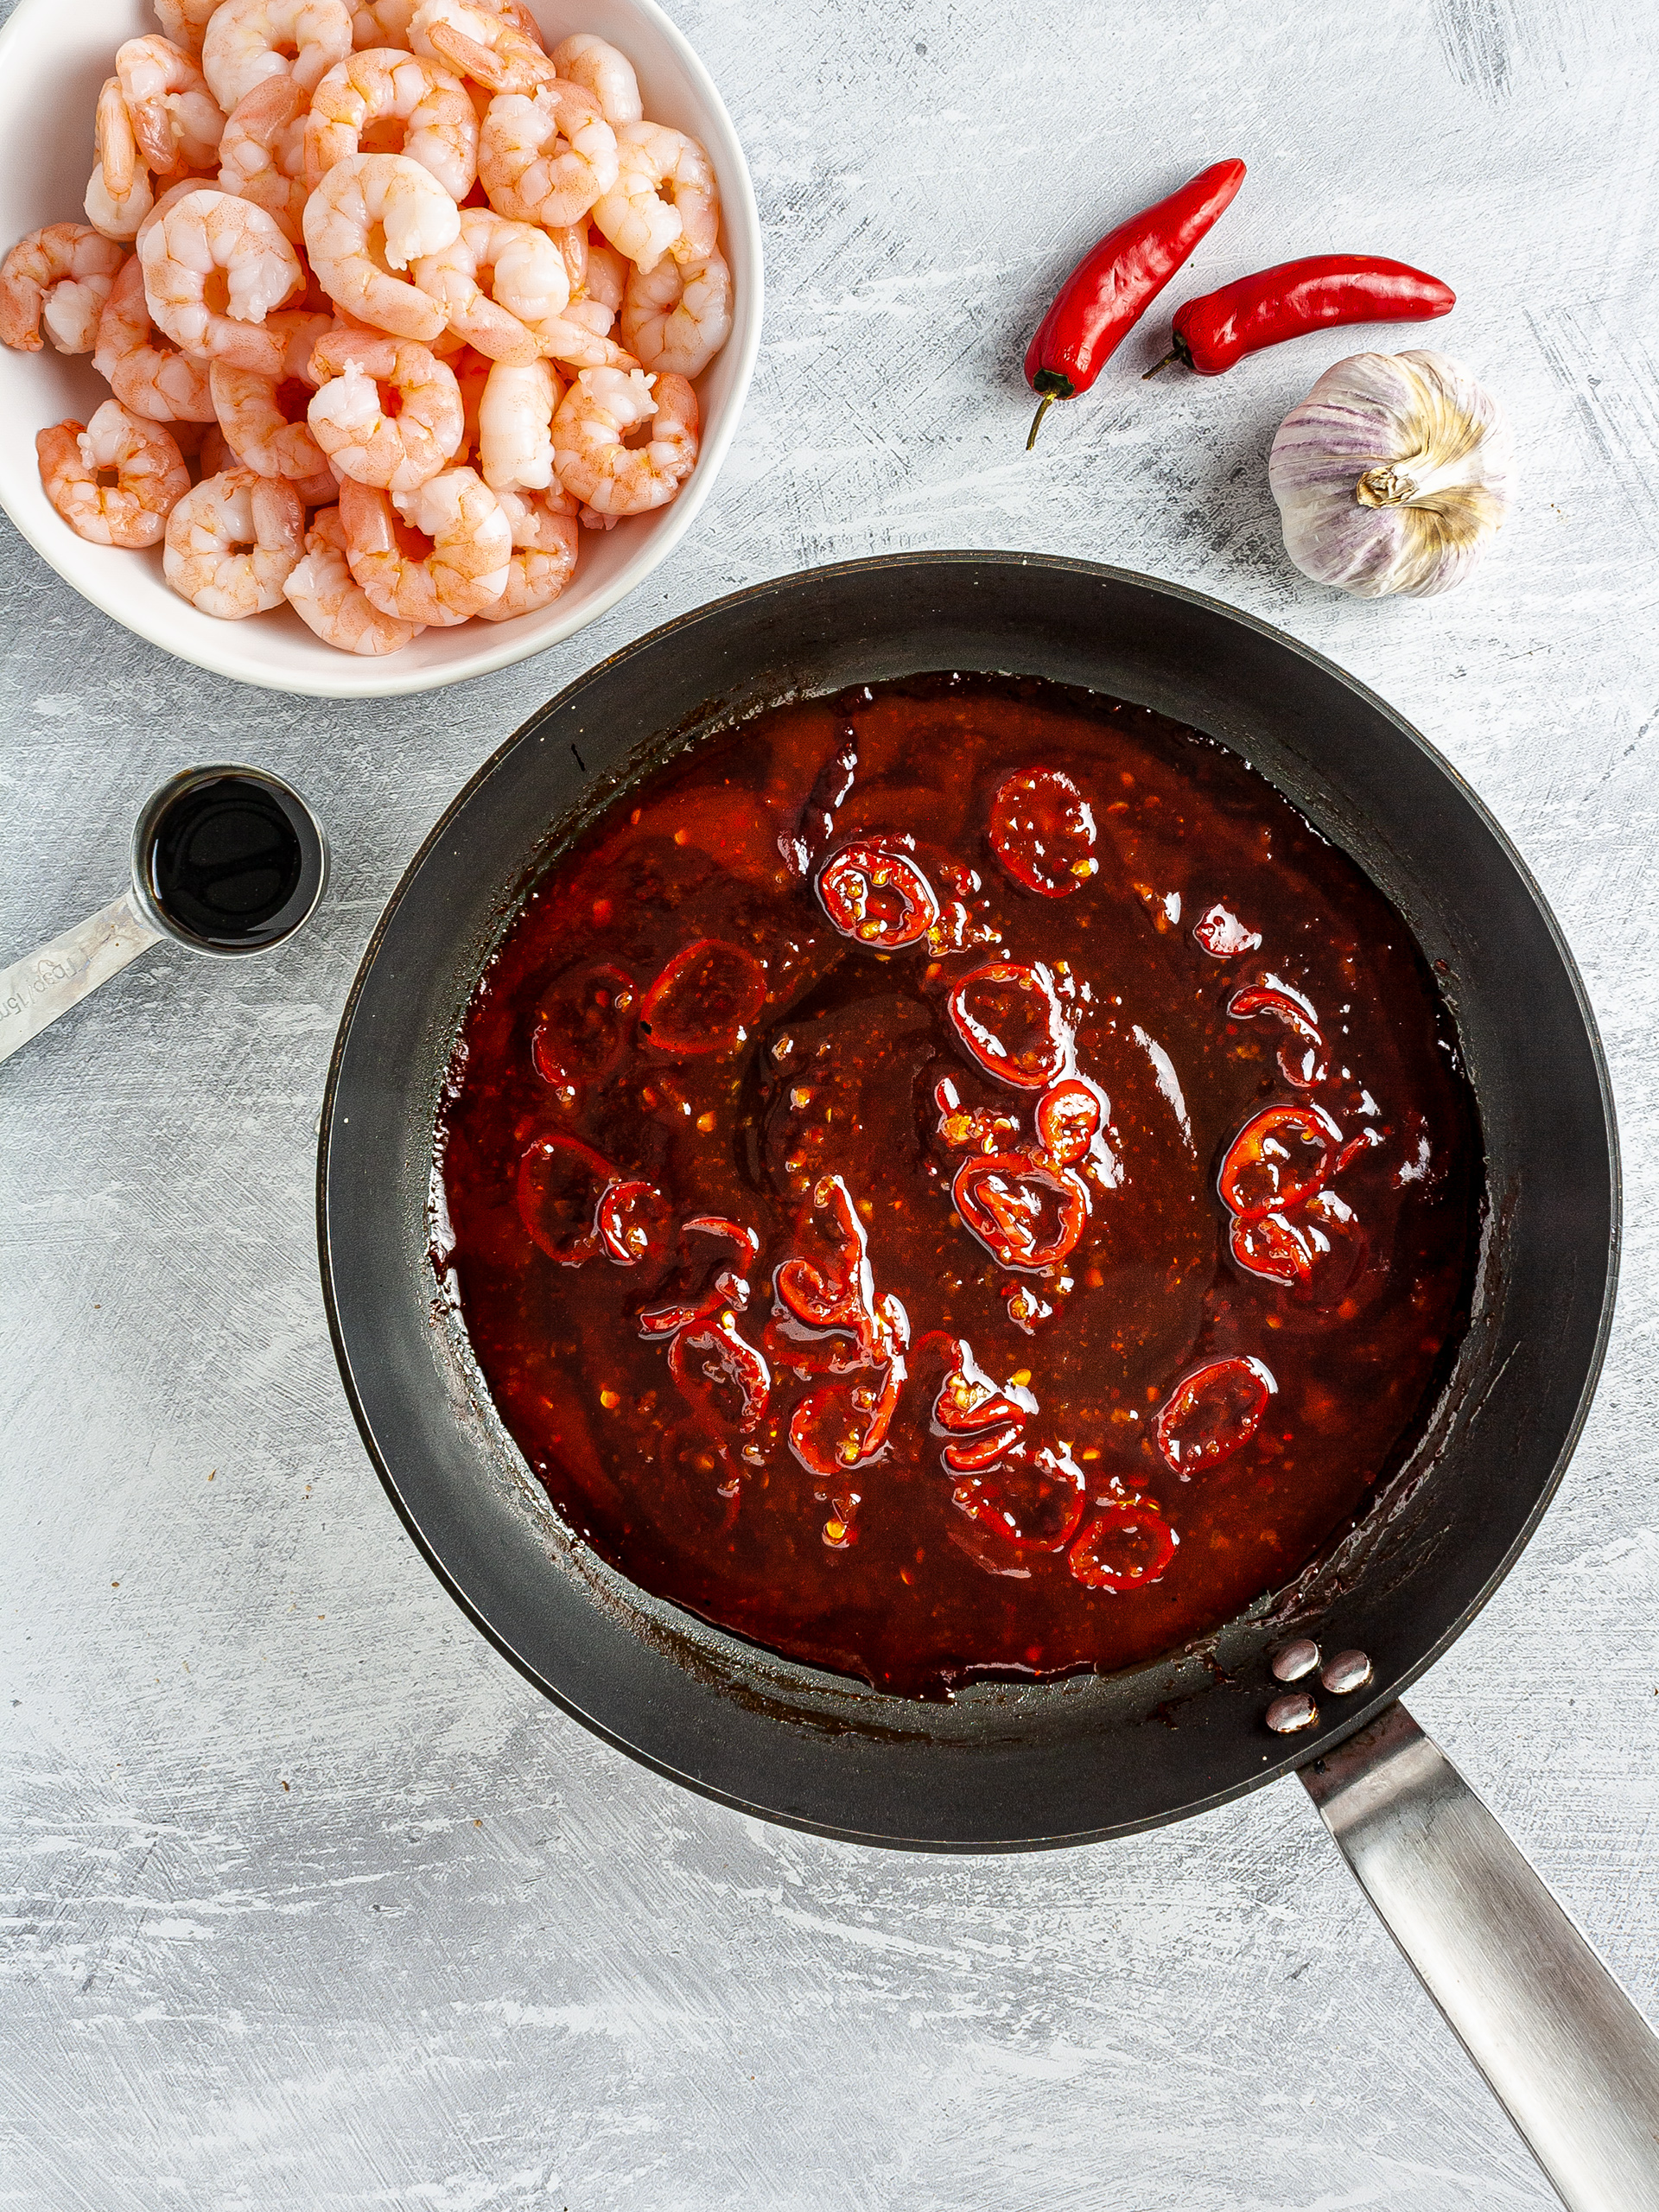 Prawns and sweet chili sauce with soy, tomato, and honey